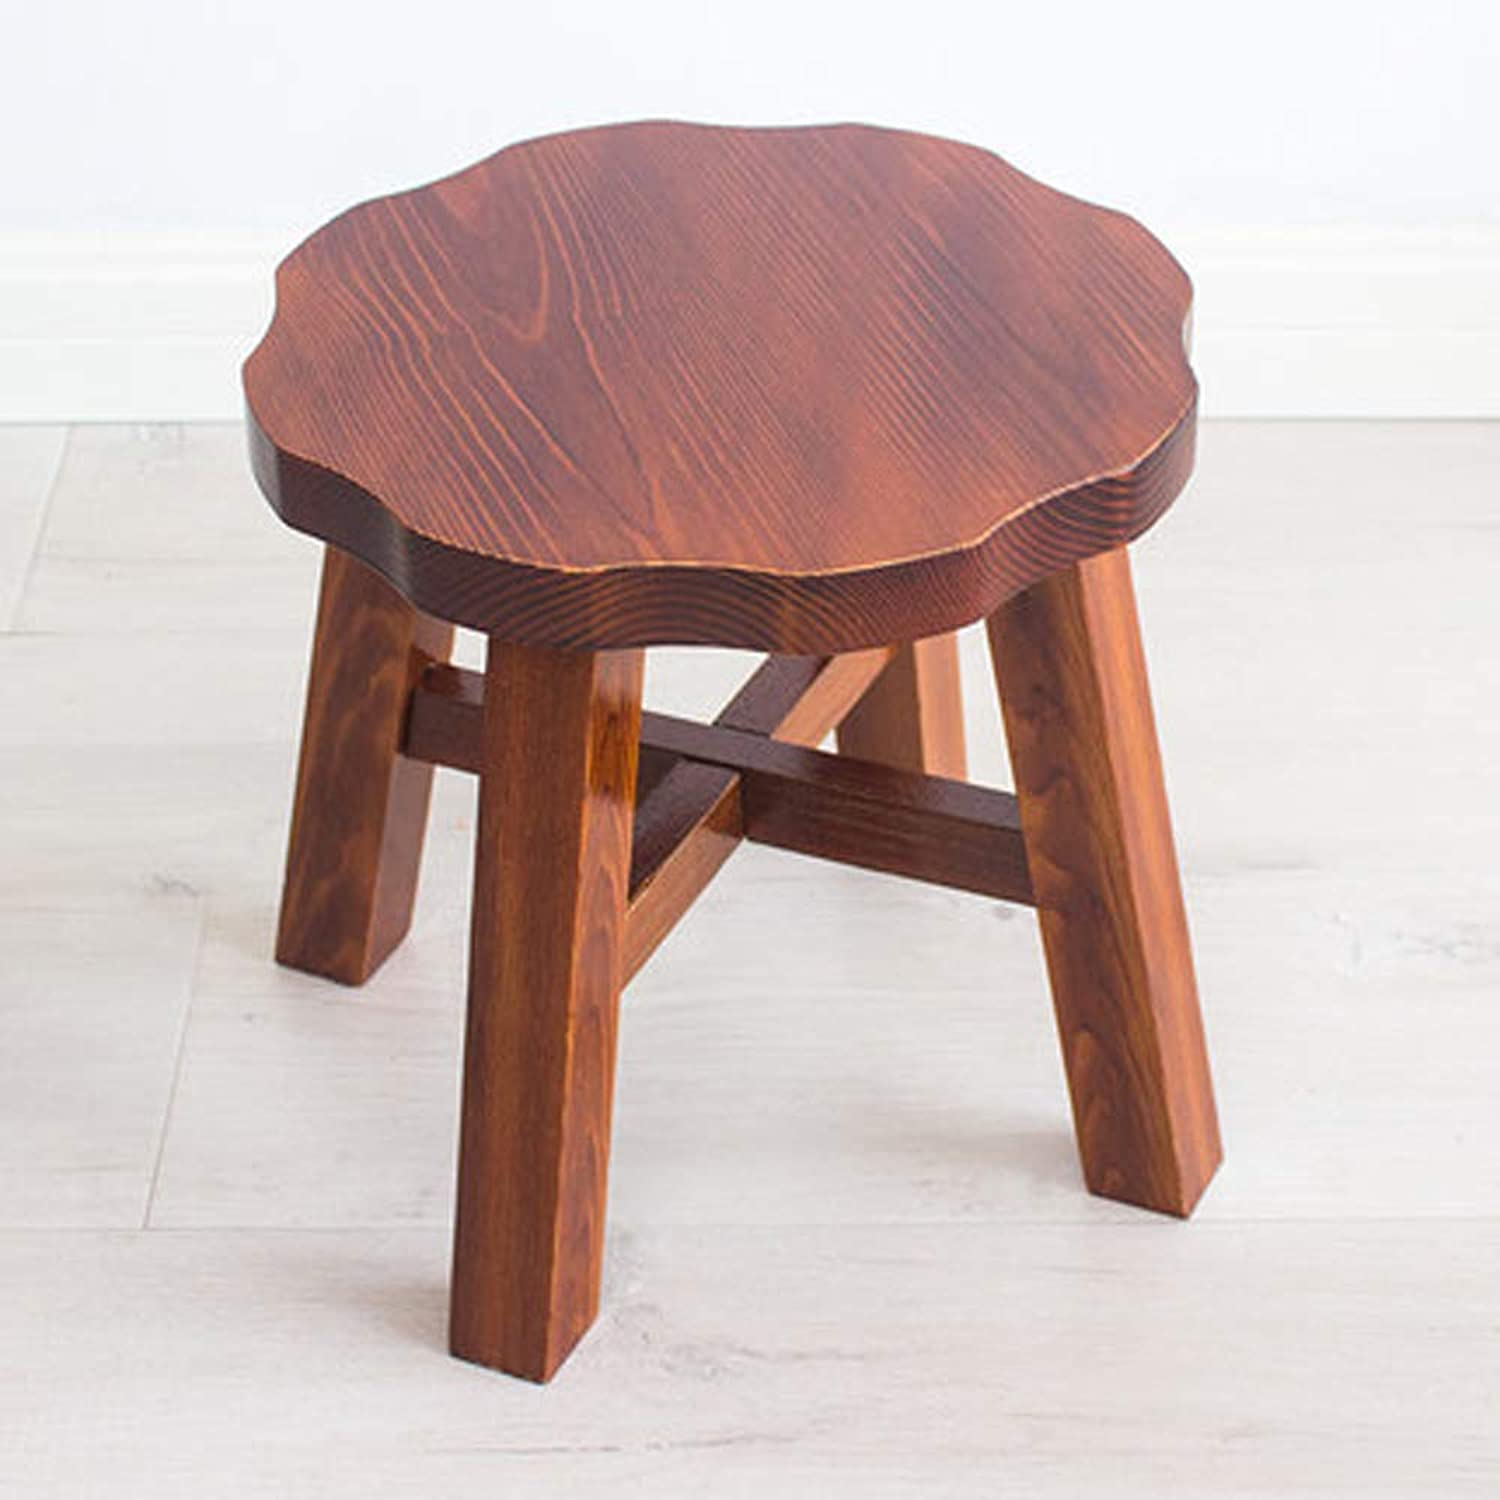 Solid Wood Small Bench, Living Room Home Stool Solid and Strong Non-Slip Mat